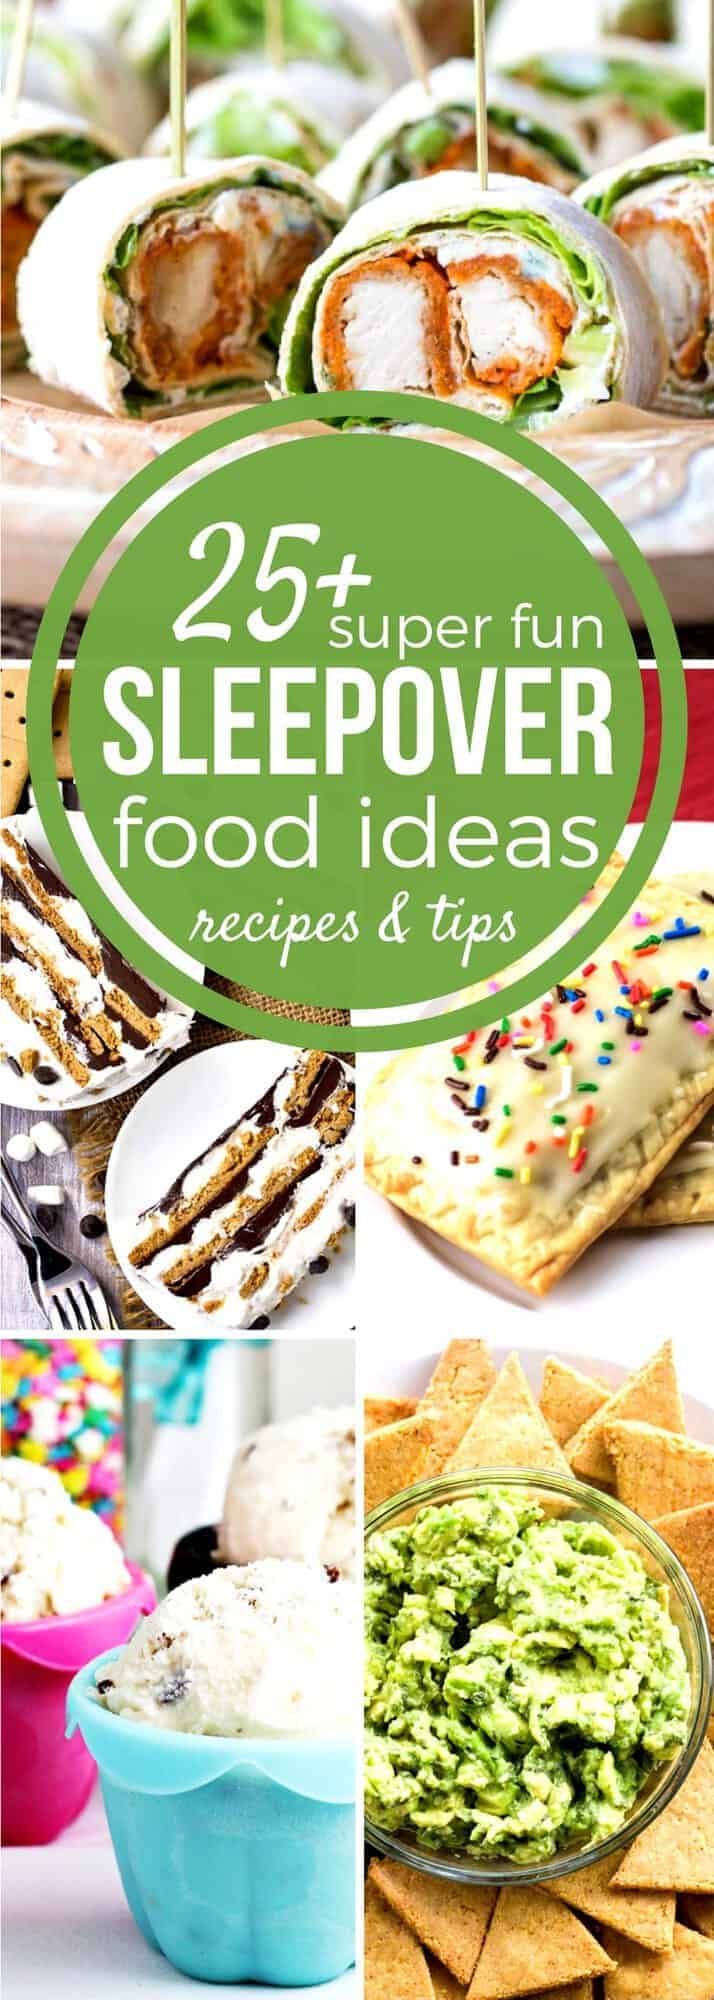 Need Sleepover Food Ideas For The Big Party Our Sunday Supper Recipe Collection Has Fun